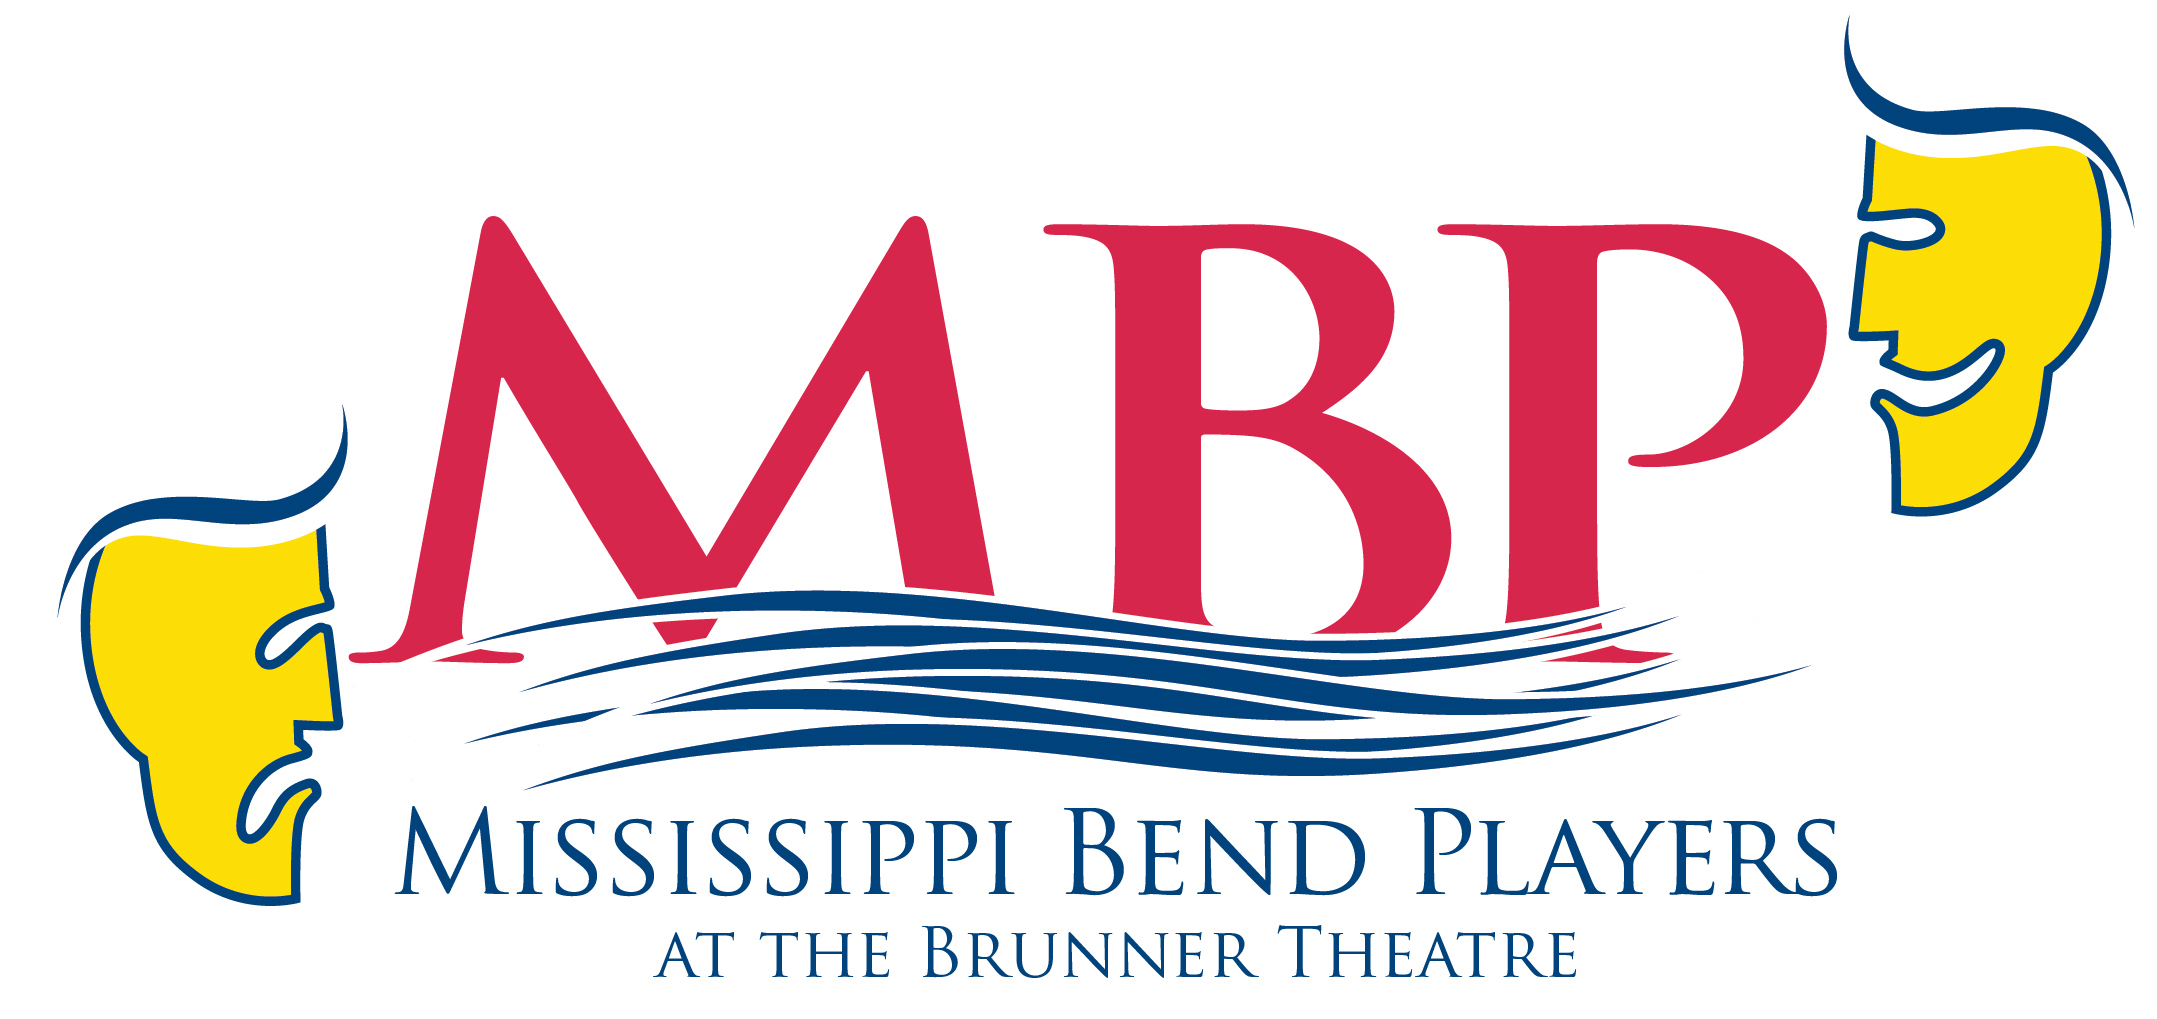 Mississippi Bend Players at the Brunner Theatre